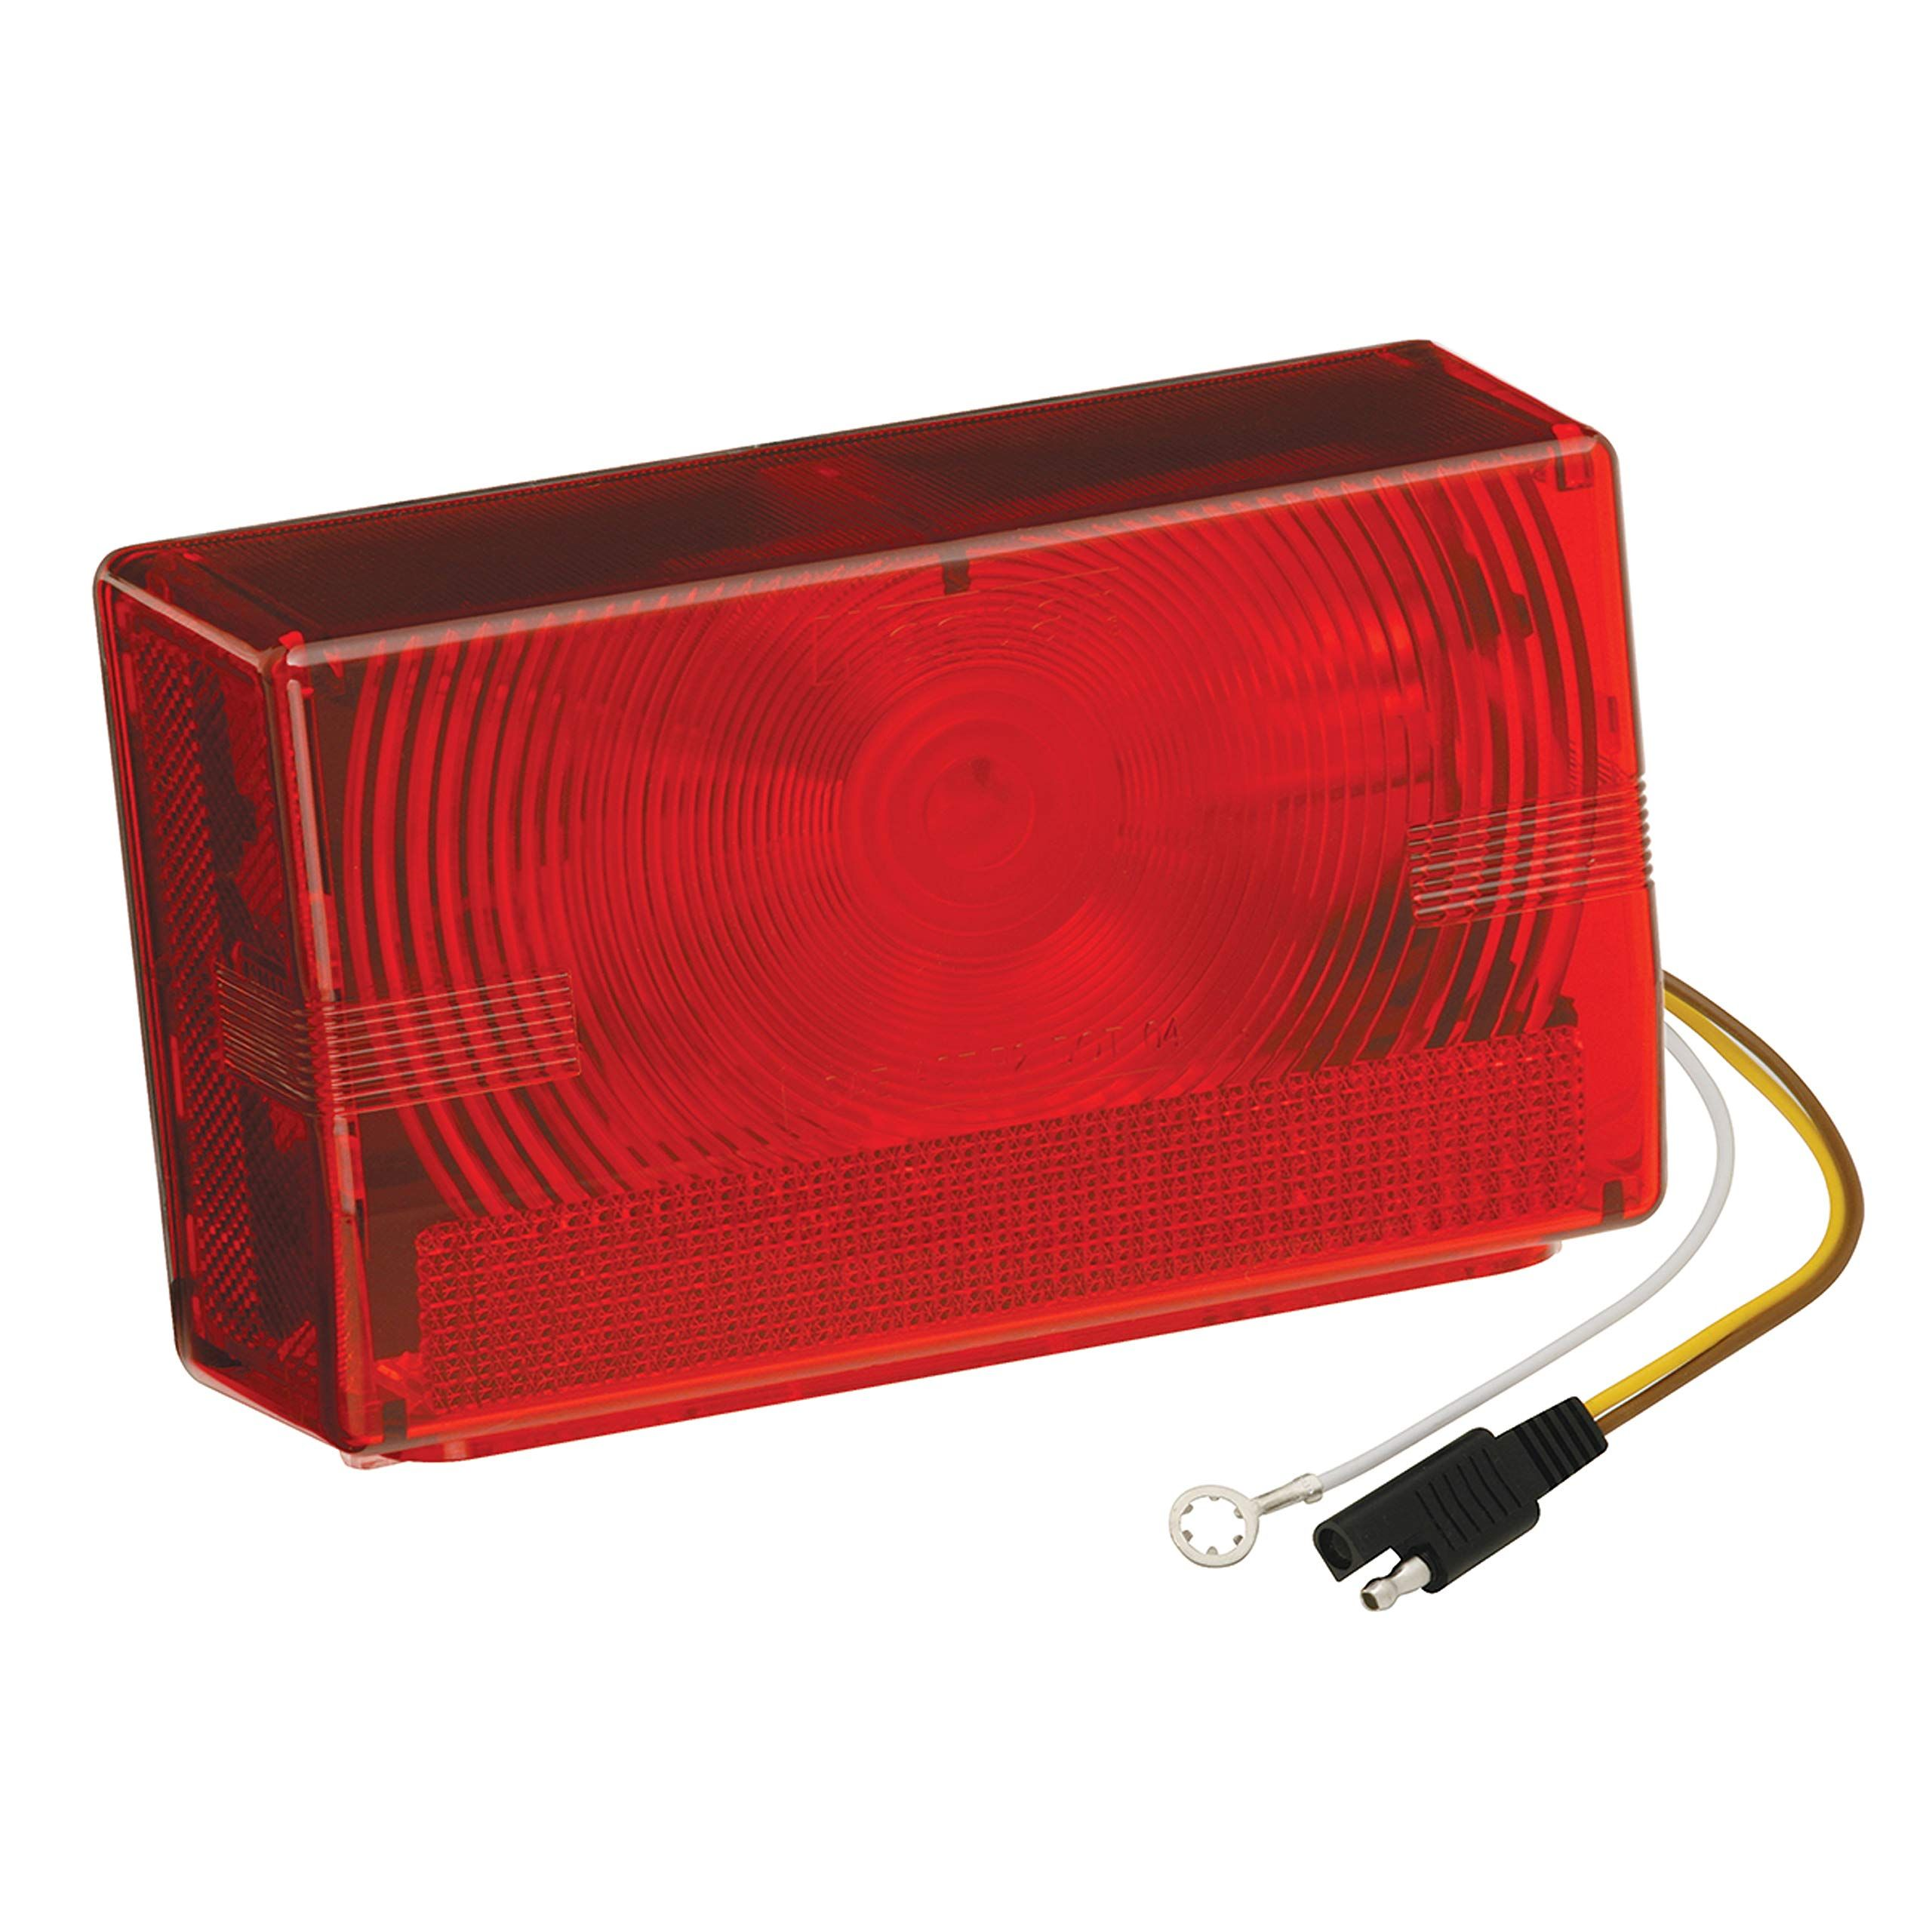 Fulton Wesbar 403025 Submersible Tail Light Learn More By Visiting The Image Link Affiliate Link Tail Light Submersible Boat Trailer Lights